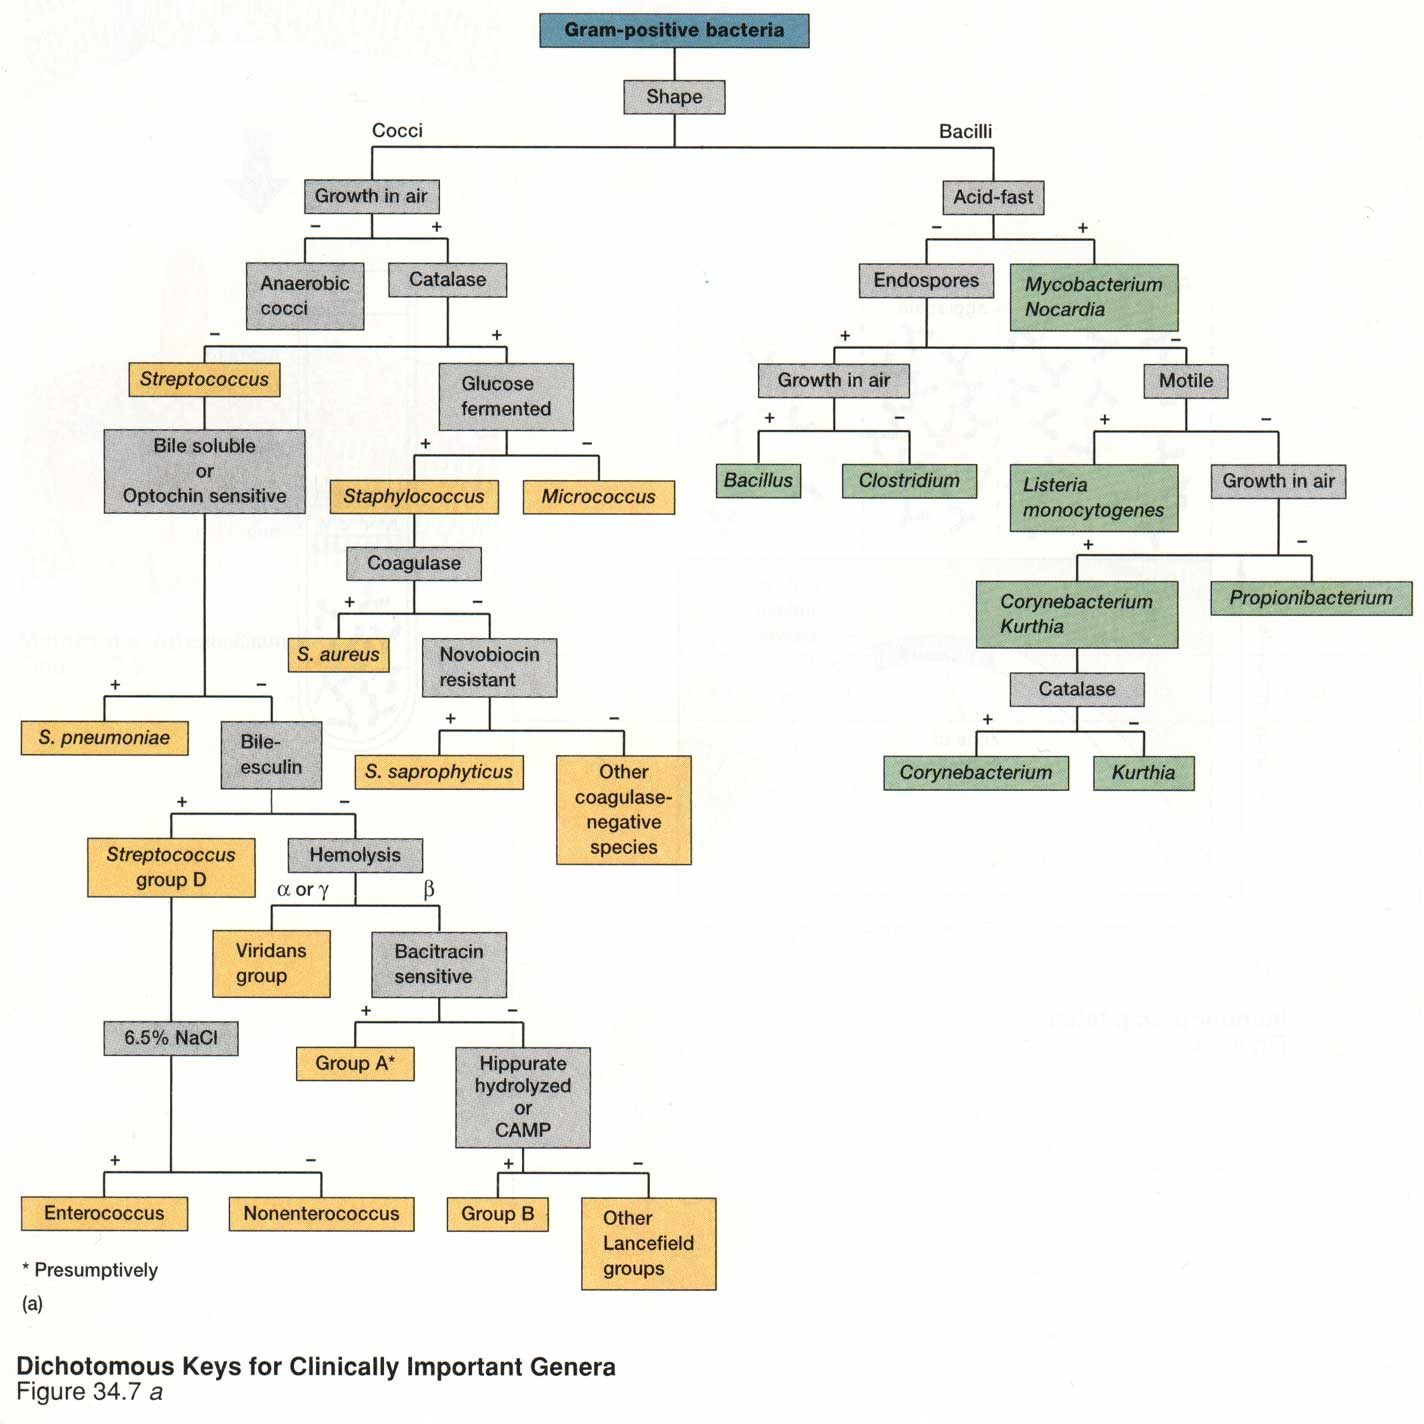 Gram positive Bacteria Flow Chart http://sites.google.com/site/elmanama143/bacterialisolationcharts